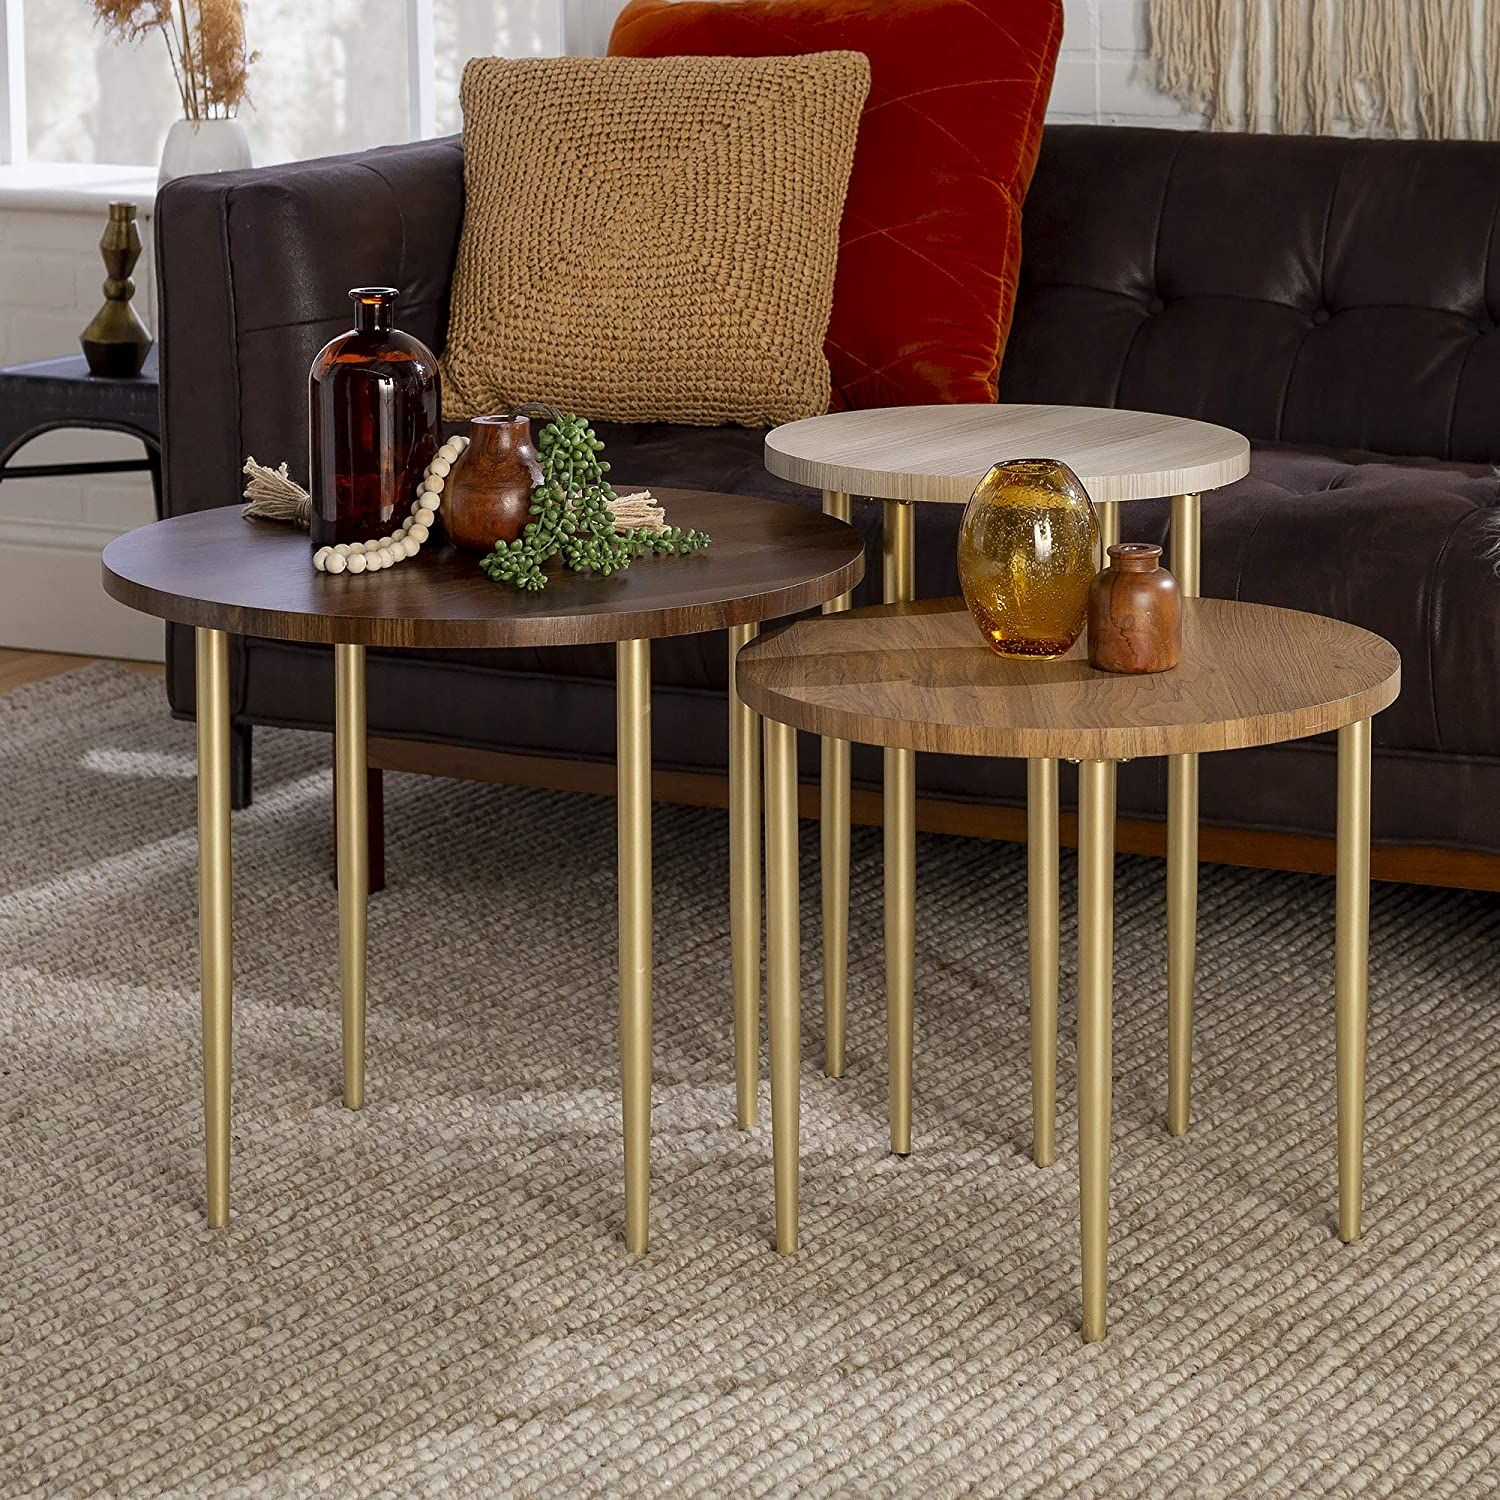 3 Piece Modern Round Nesting Coffee Table Set In Dark Walnut In 2021 Round Nesting Coffee Tables Nesting Coffee Tables Coffee Table [ 1500 x 1500 Pixel ]